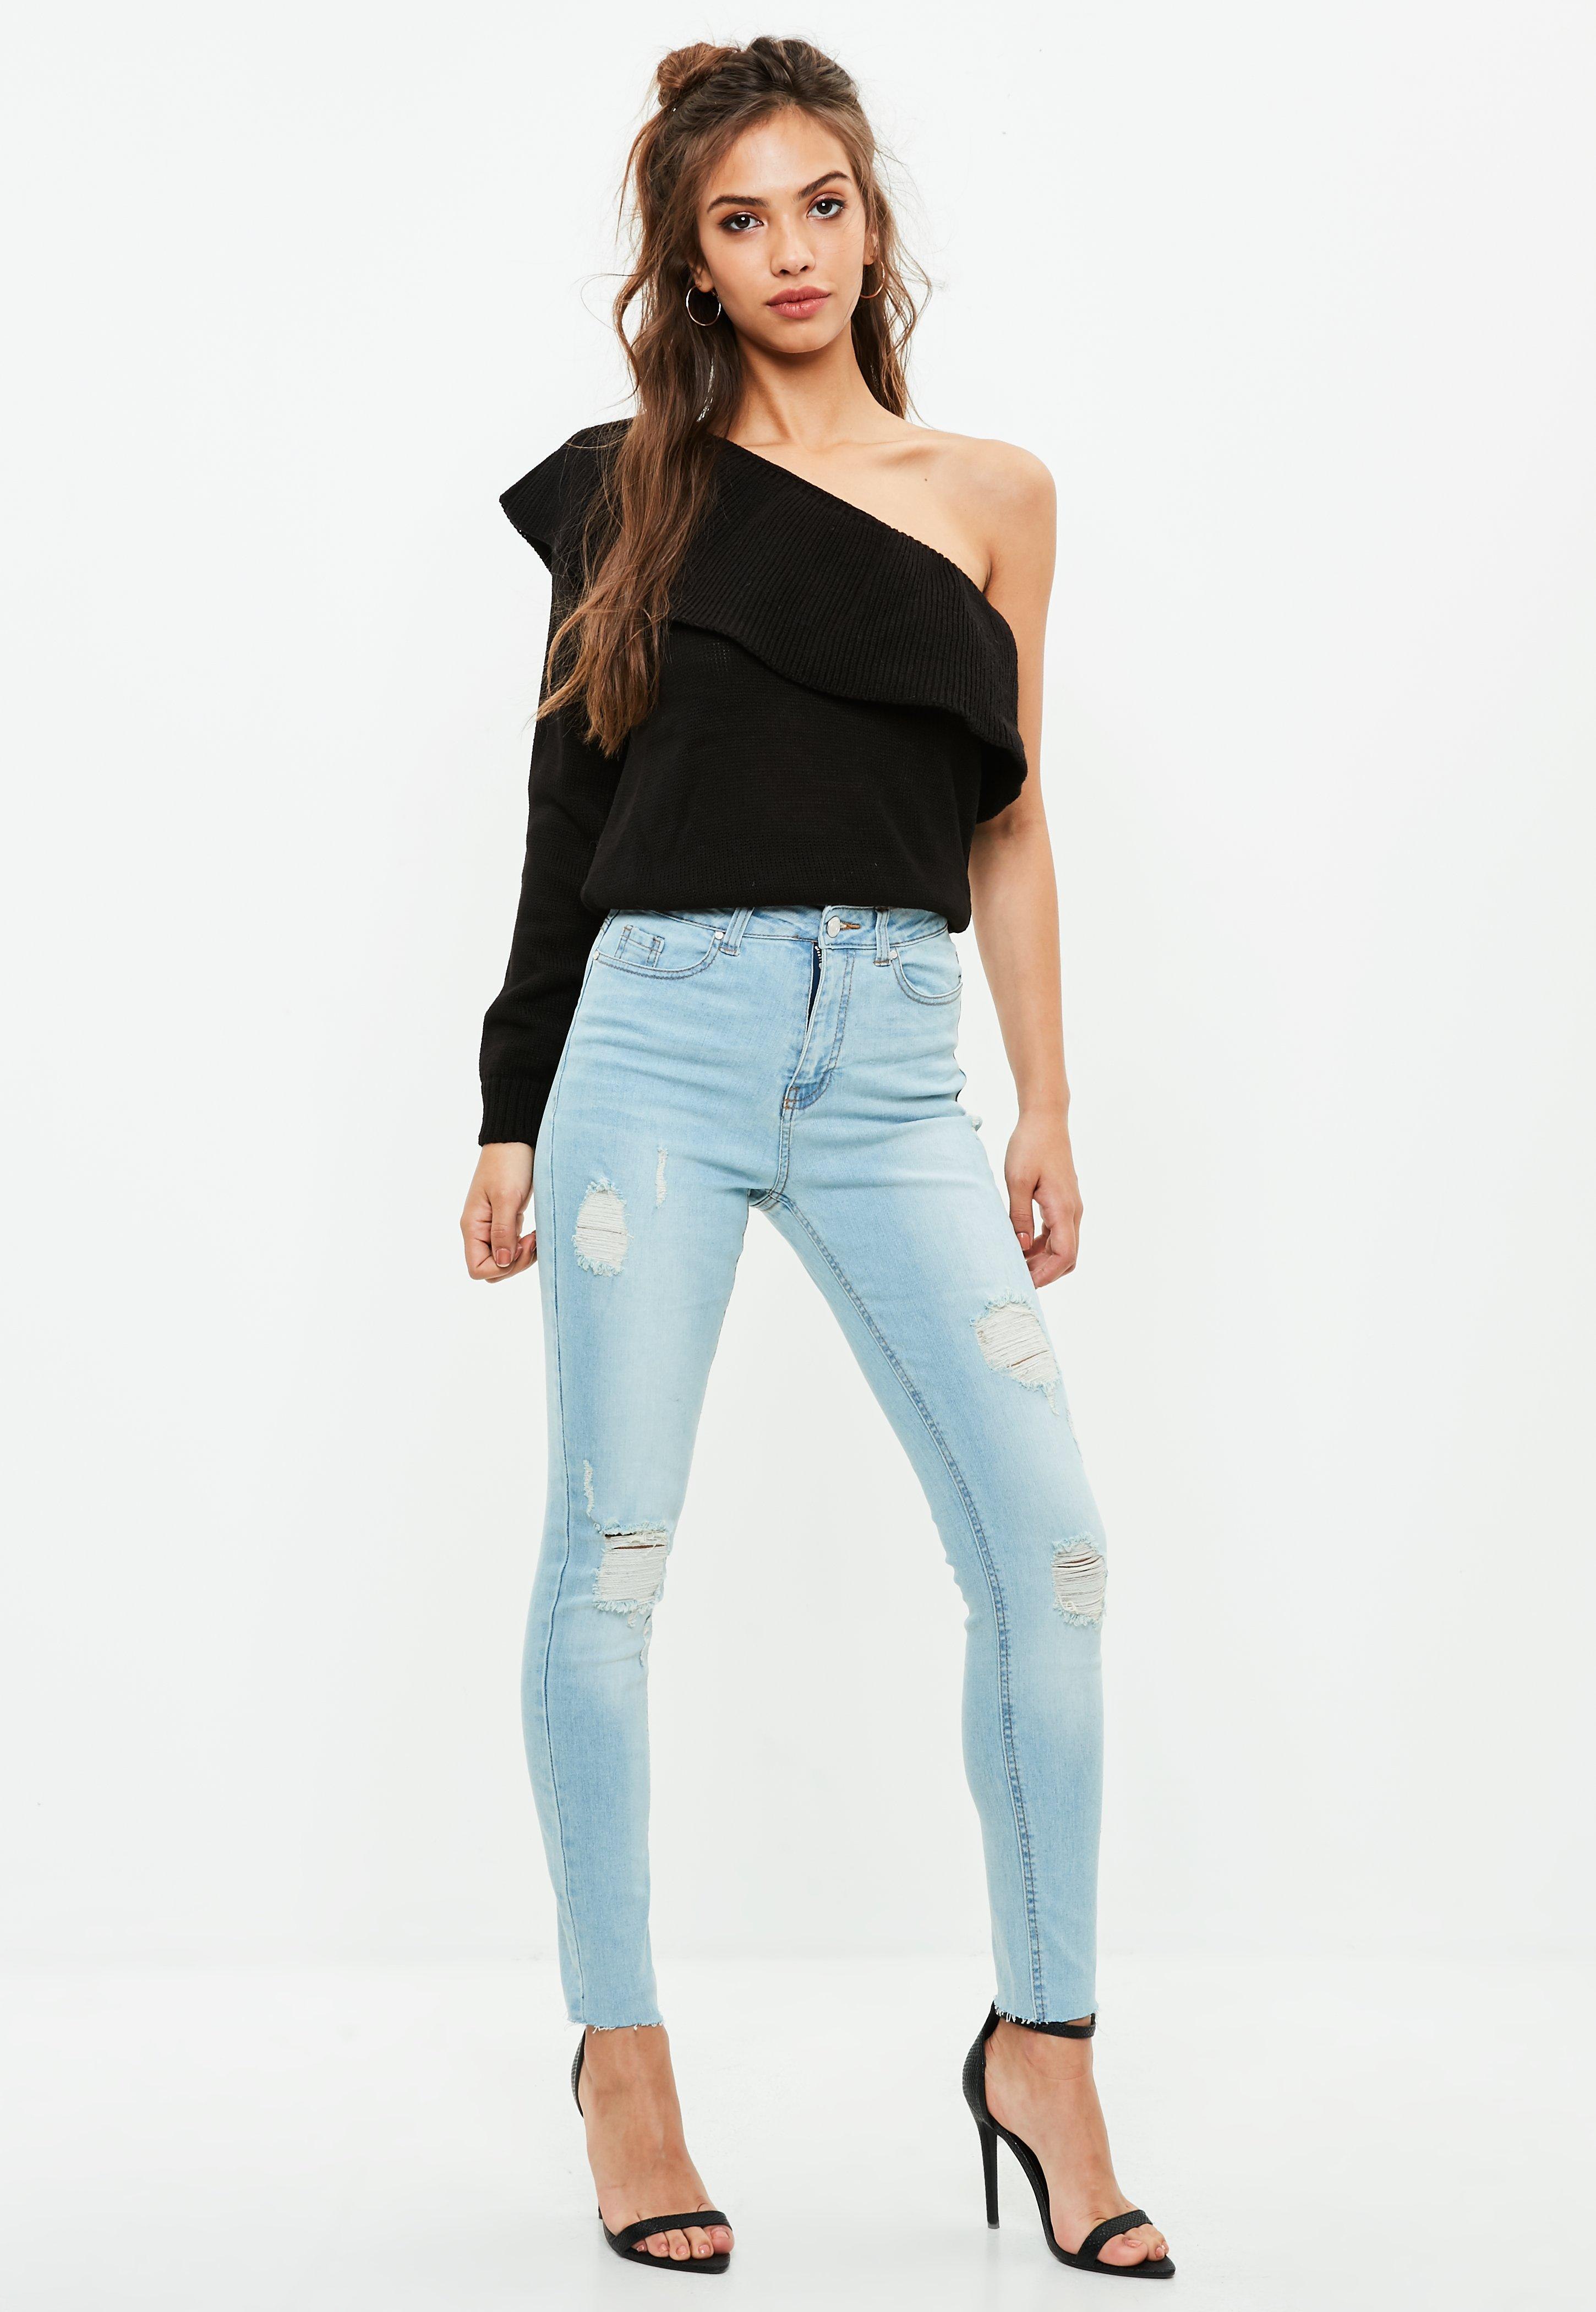 cc0c3b43377 Missguided Blue Sinner High Waisted Ripped Skinny Jeans at £25 ...